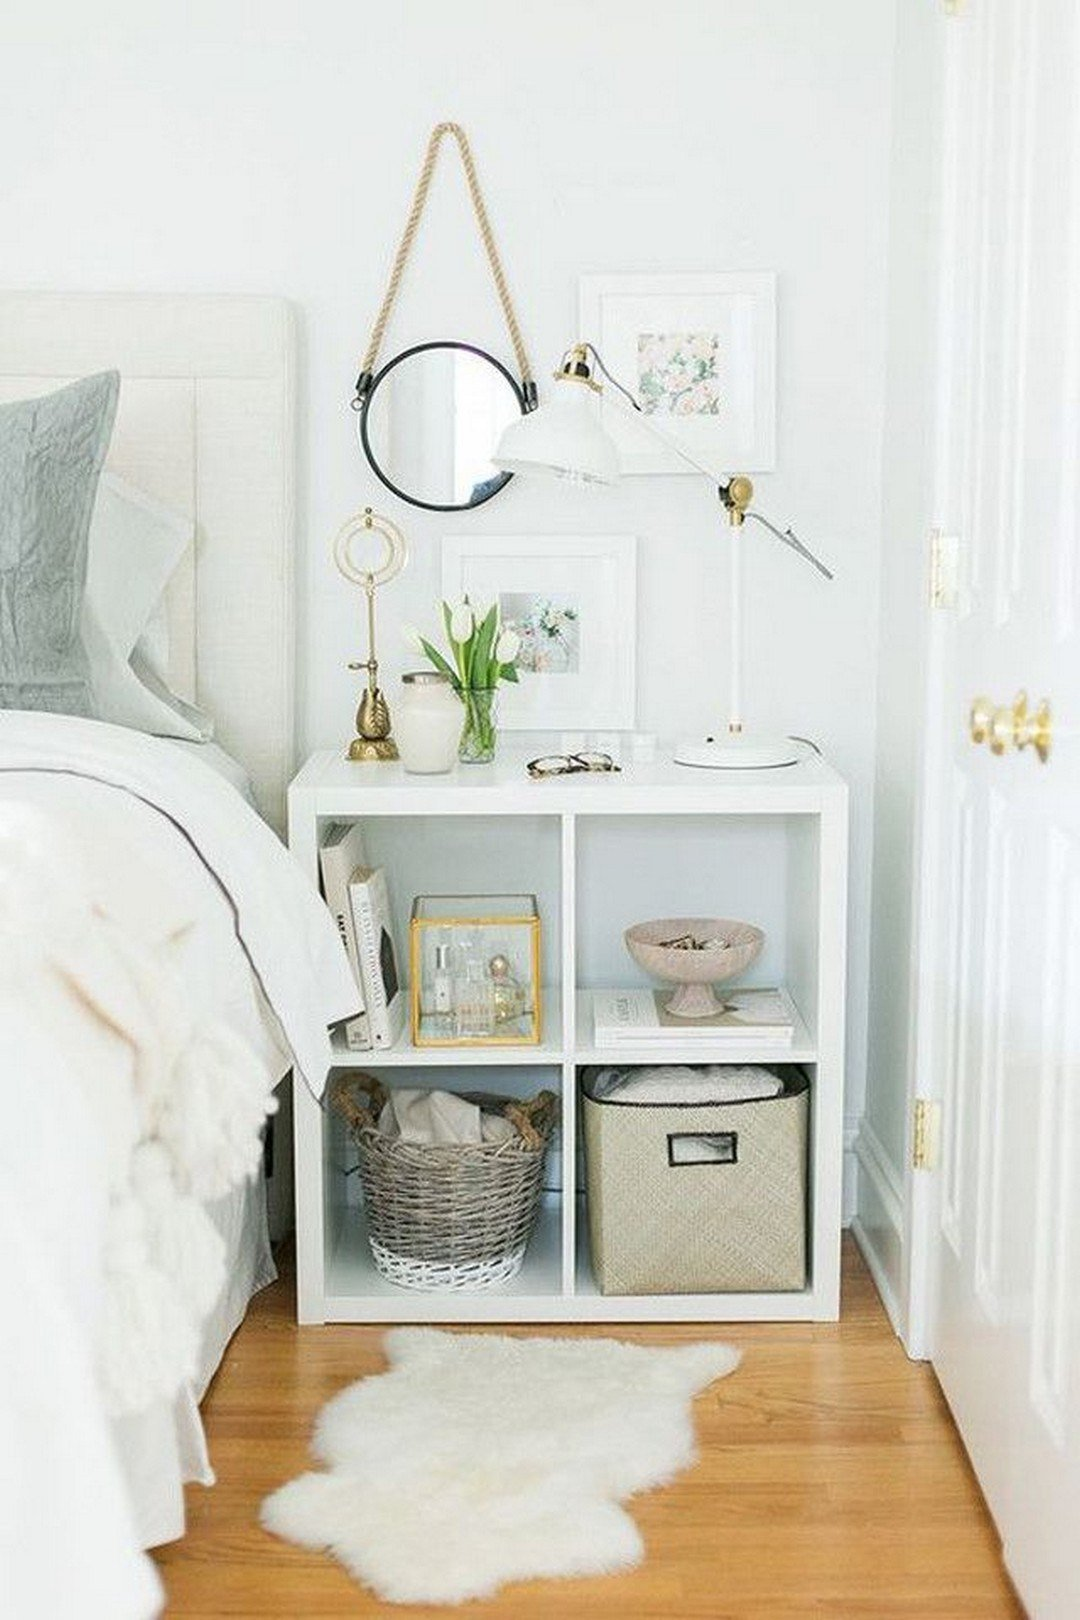 Best Easy Diy Small Bedroom Organization And Storage Hacks 12 With Pictures